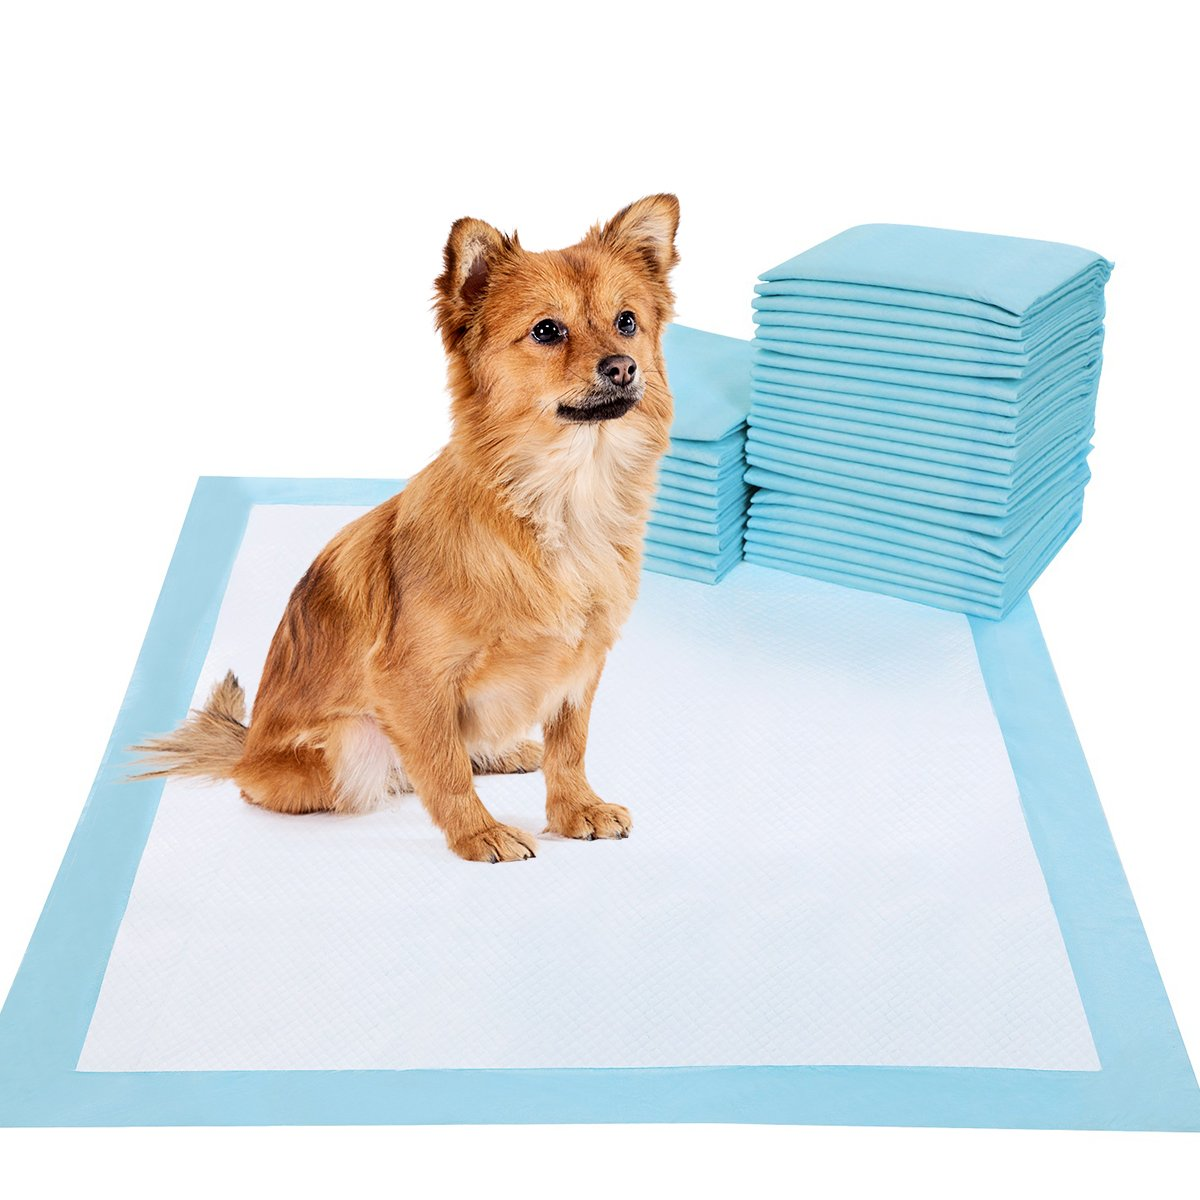 BESTLE Pet Training and Puppy Pads Pee Pads for Dogs 22''x23''-100 Count Super Absorbent & Leak-Free